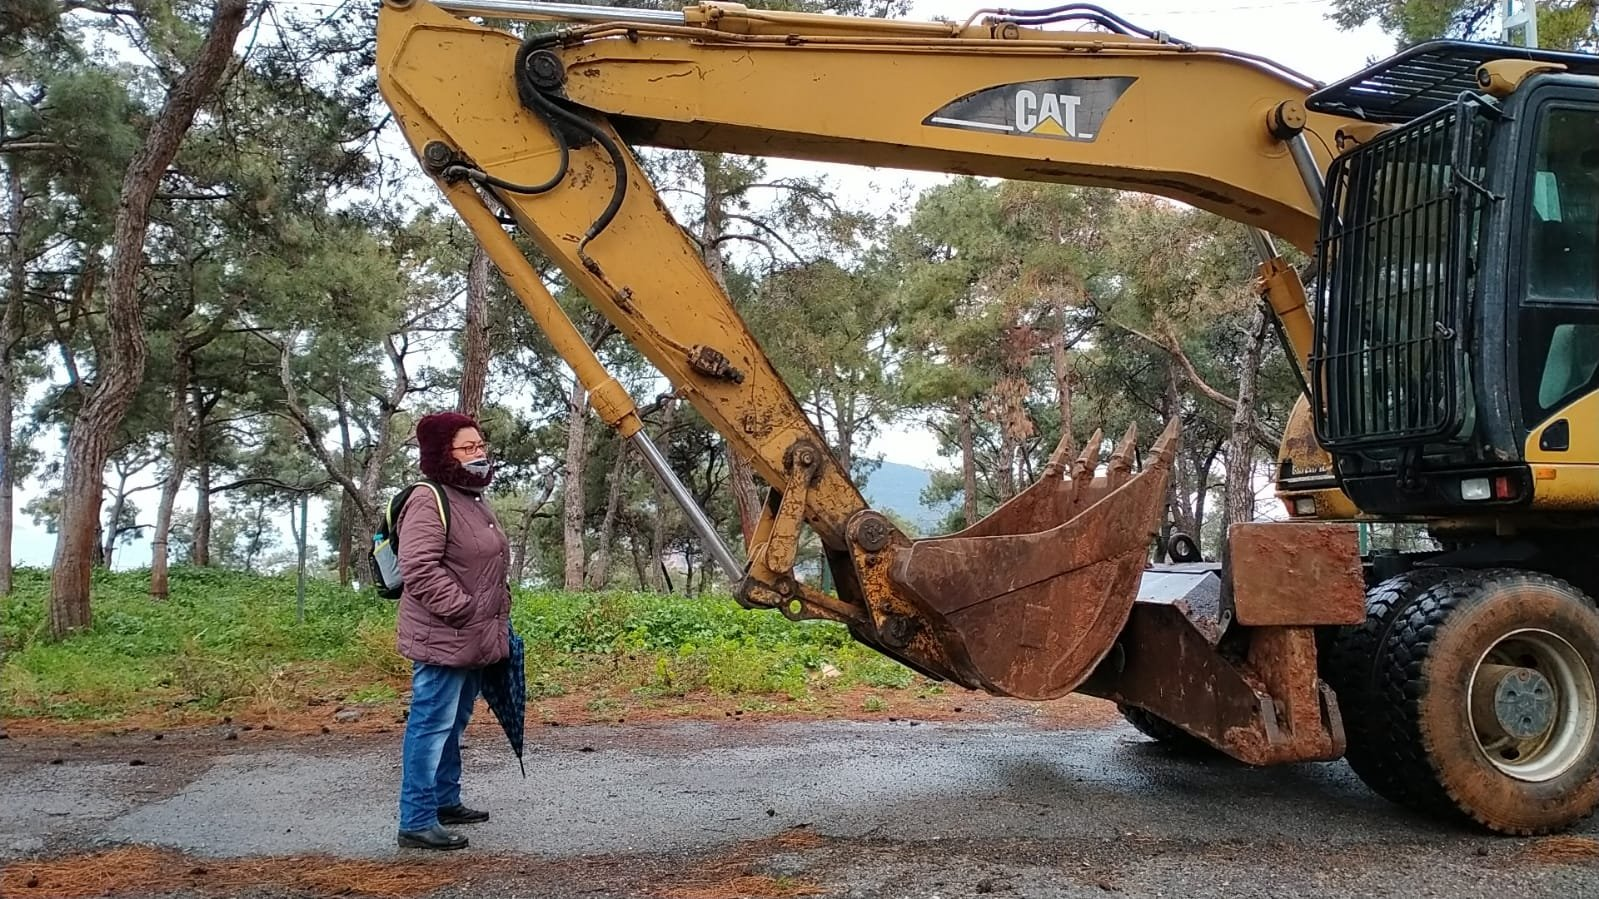 An activist stands in front of a bulldozer preparing to demolish a stable, Heybeliada, Istanbul, Turkey, March 25, 2021. (DHA PHOTO)